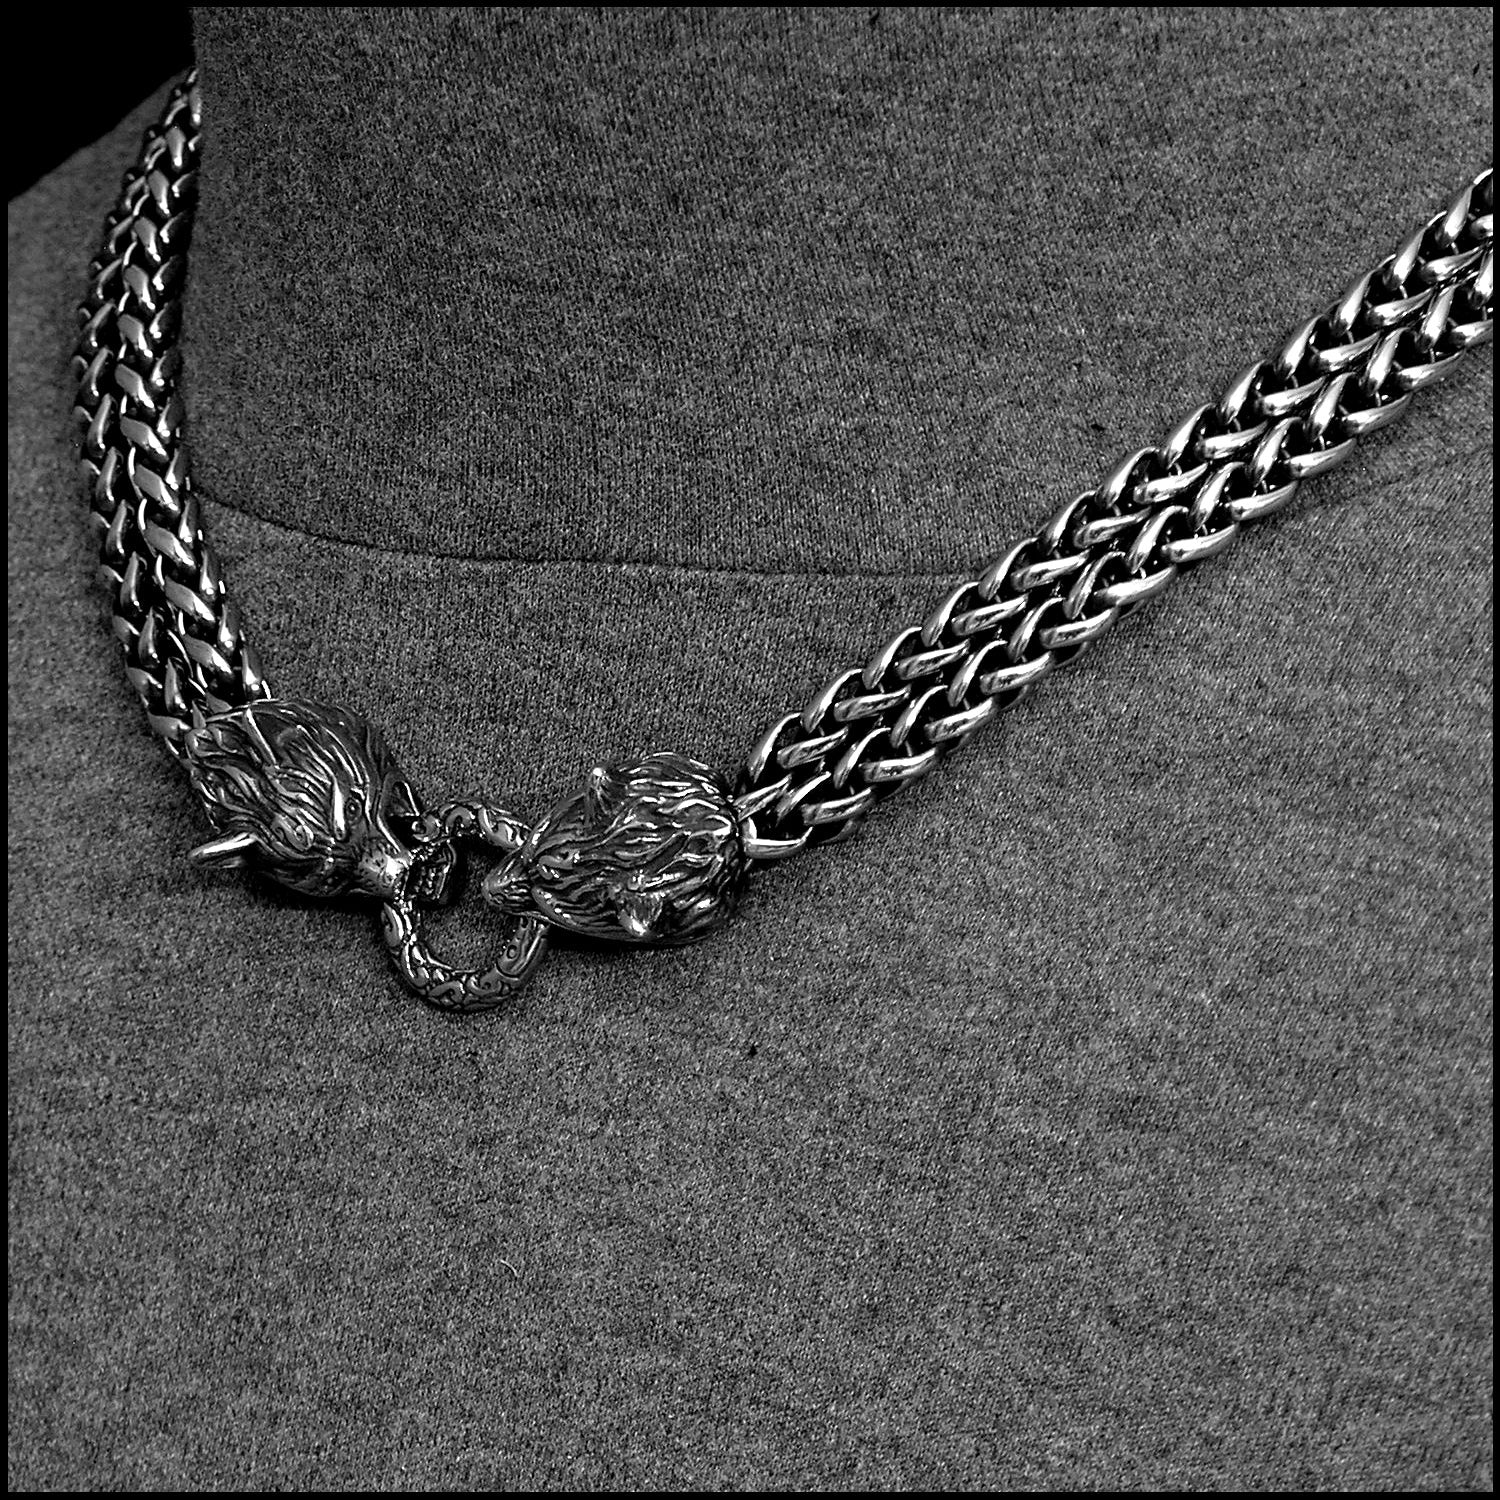 Double Strand Antique Viking Braid Chain Necklace with Snarling Wolf Head Ends